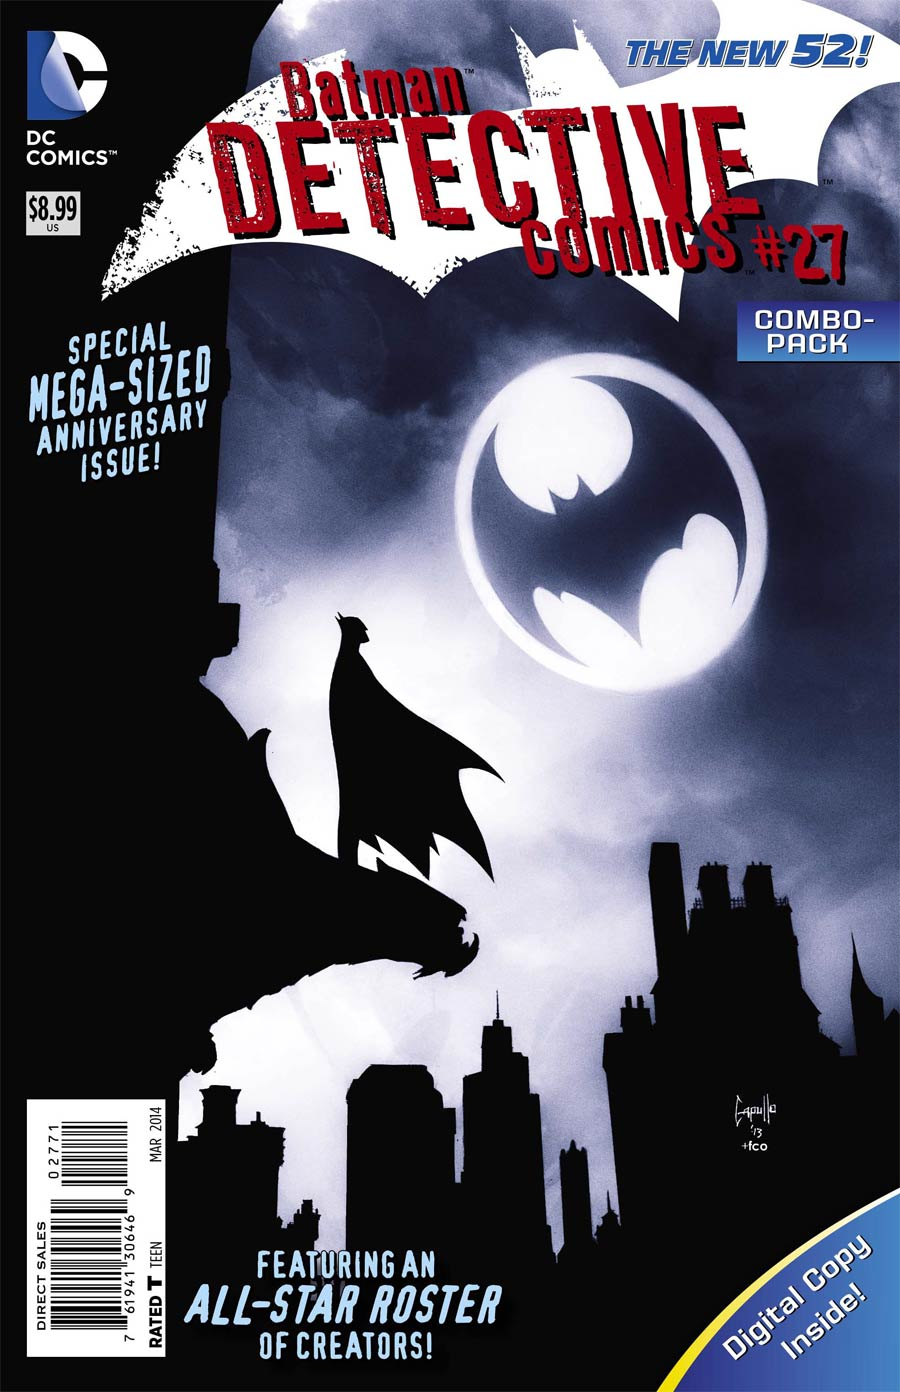 Detective Comics Vol 2 #27 Cover D Combo Pack Without Polybag (Gothtopia Tie-In)